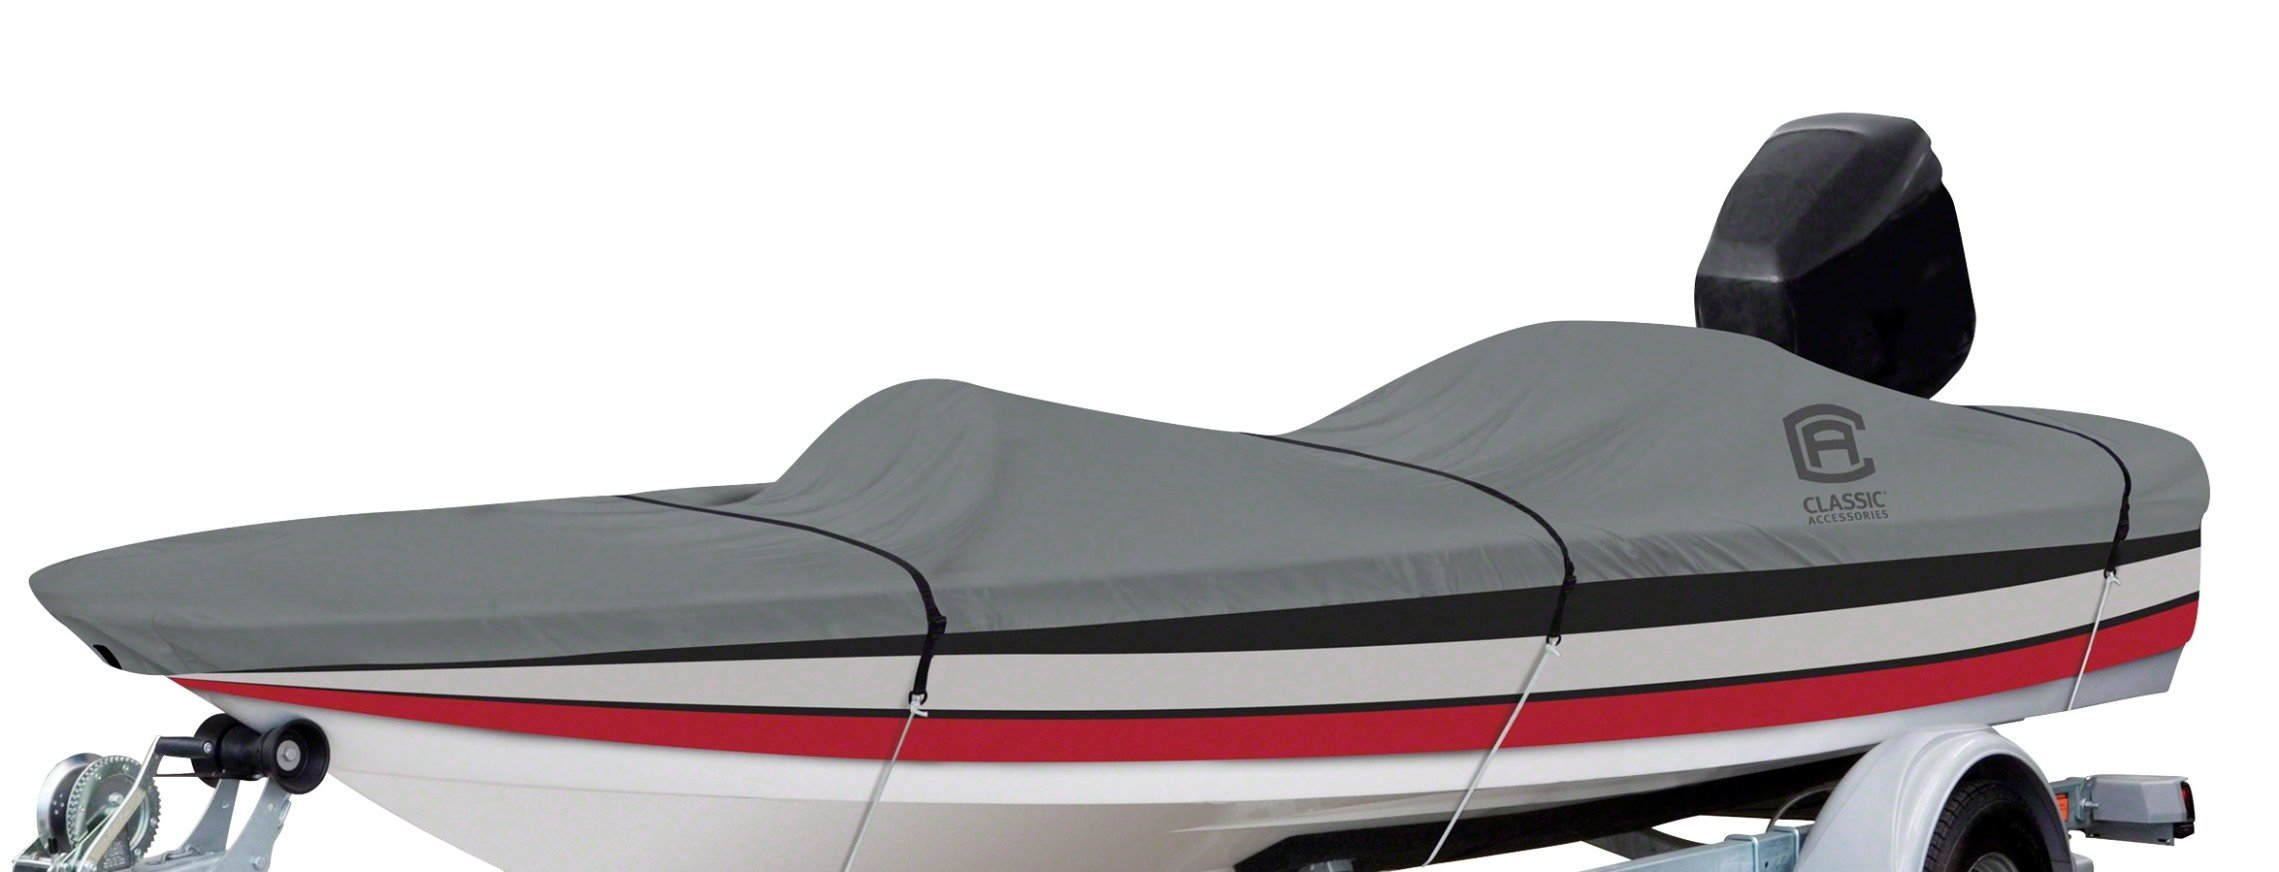 Classic Accessories Lunex RS-1 Boat Cover For Bass Boats 16' - 18.5' L Up to 98'' W by Classic Accessories